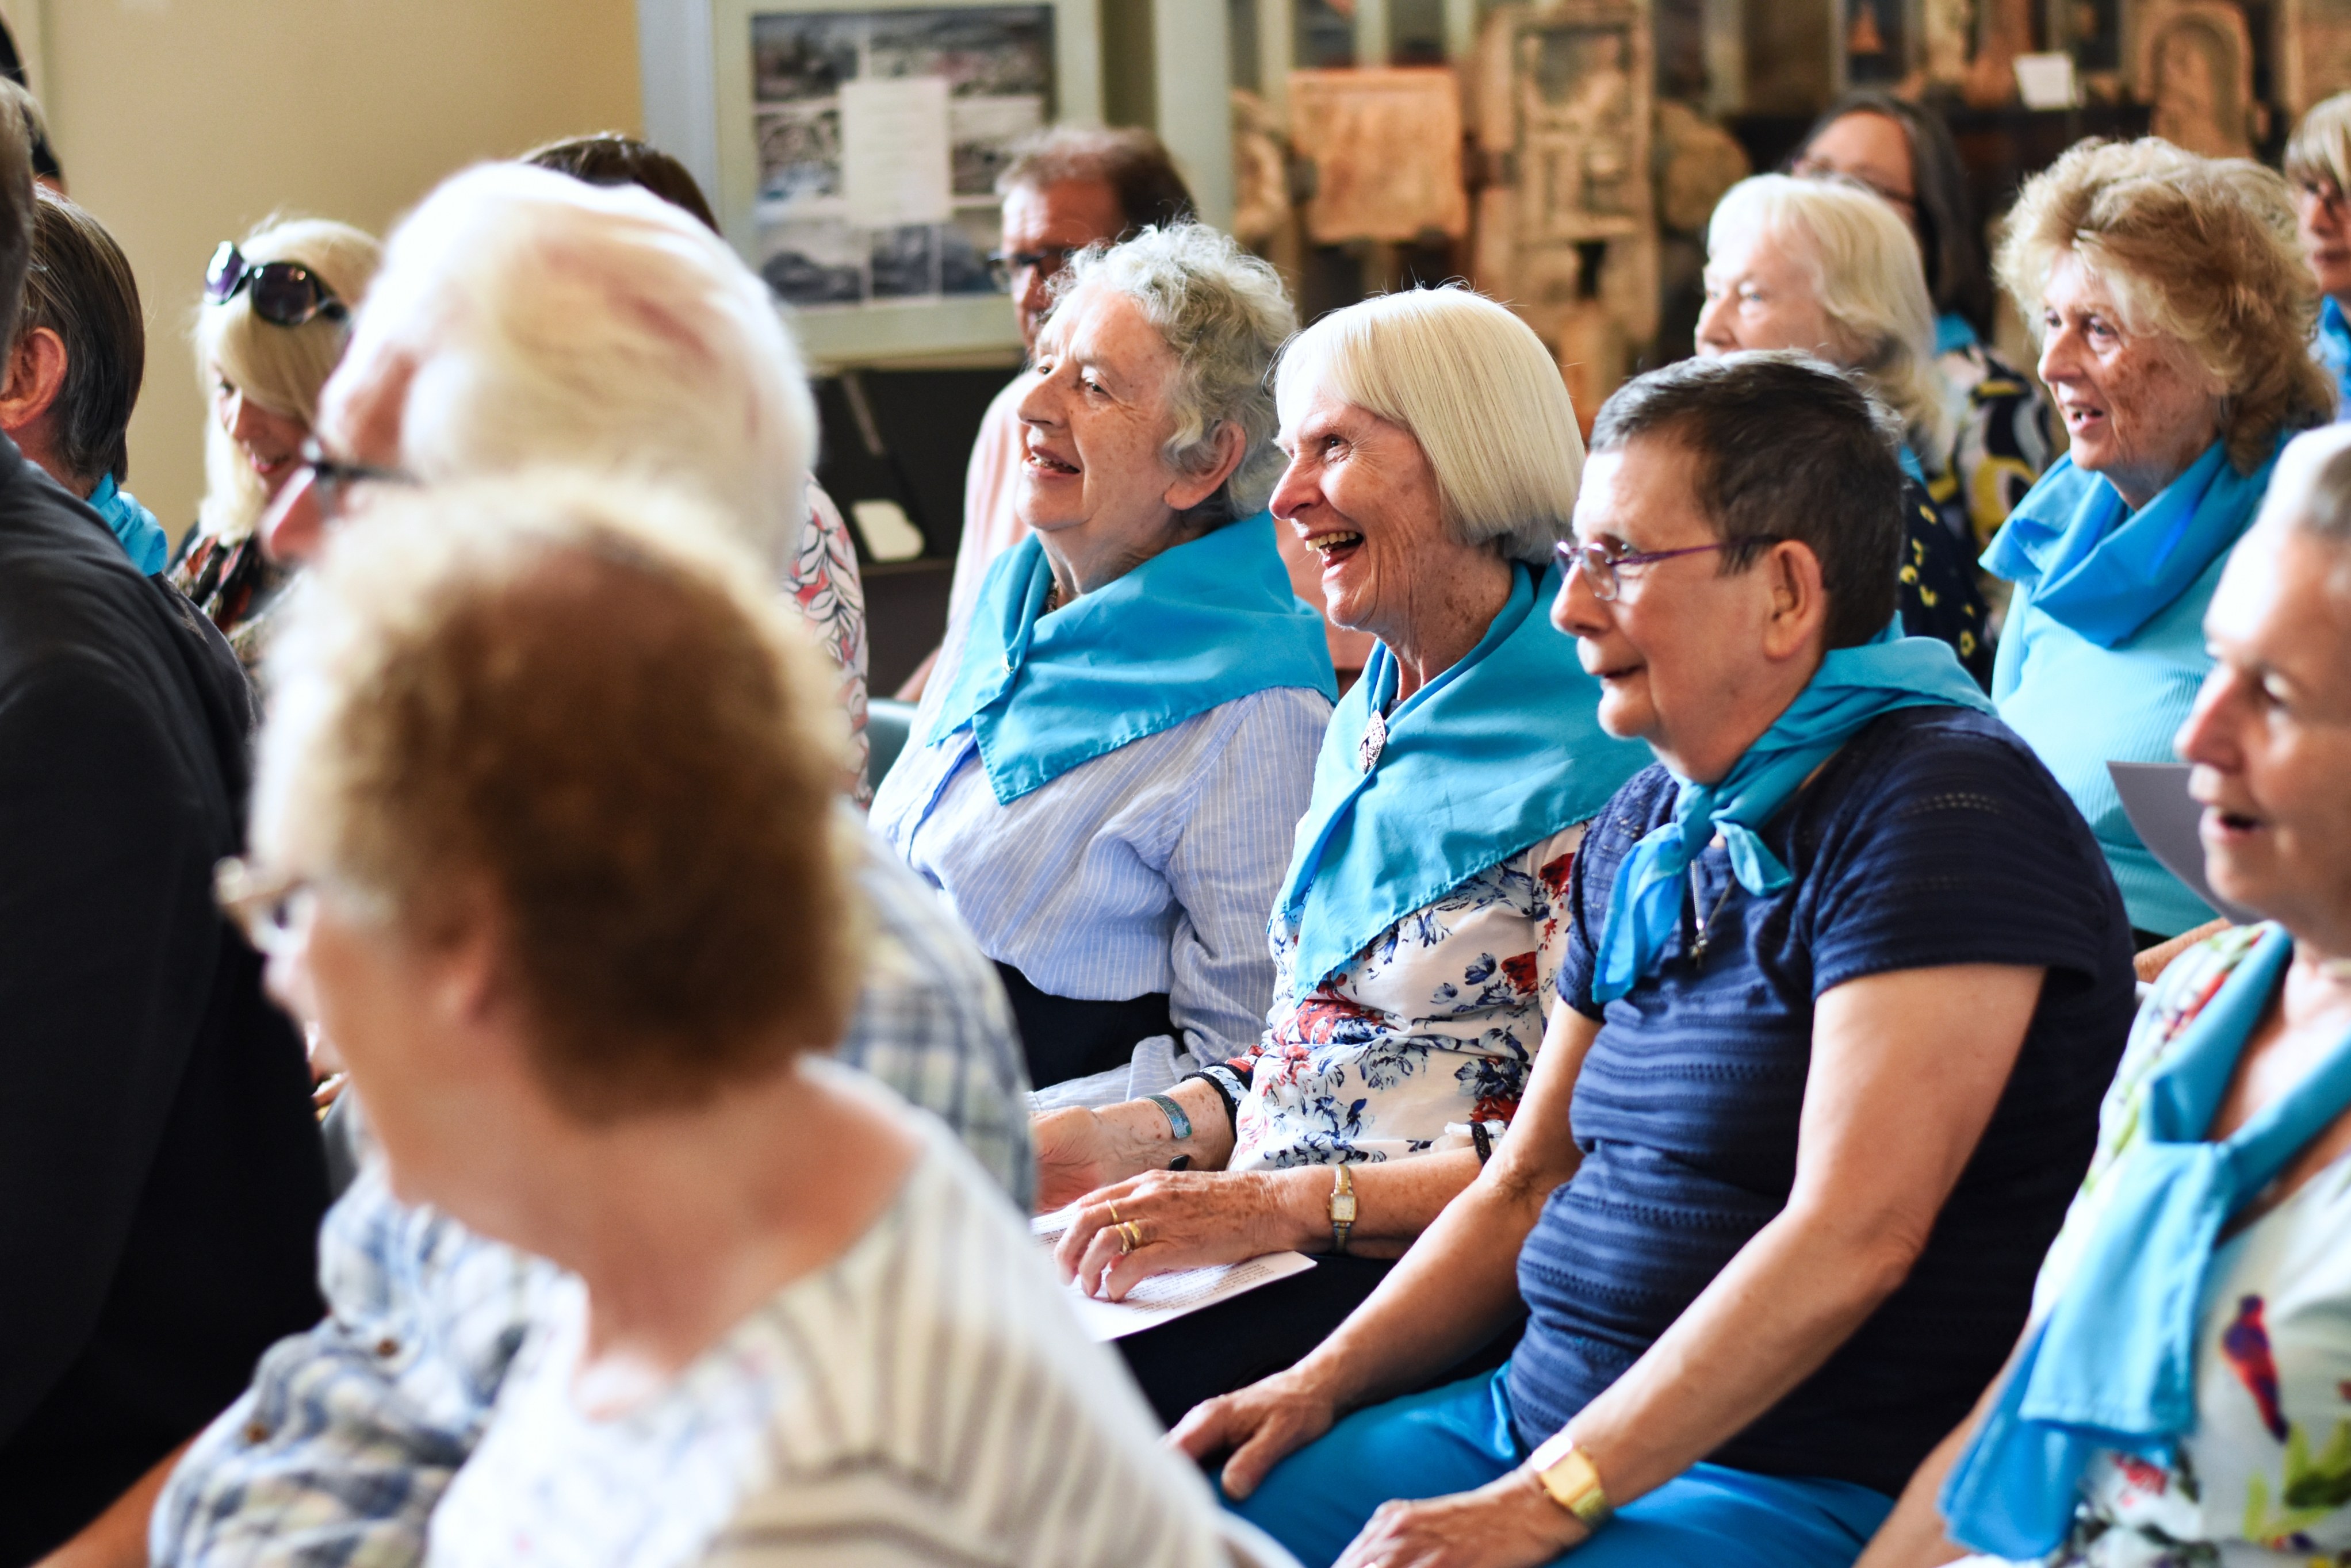 A group of older people sat down in the Explores and Collectors Gallery laughing and smiling.